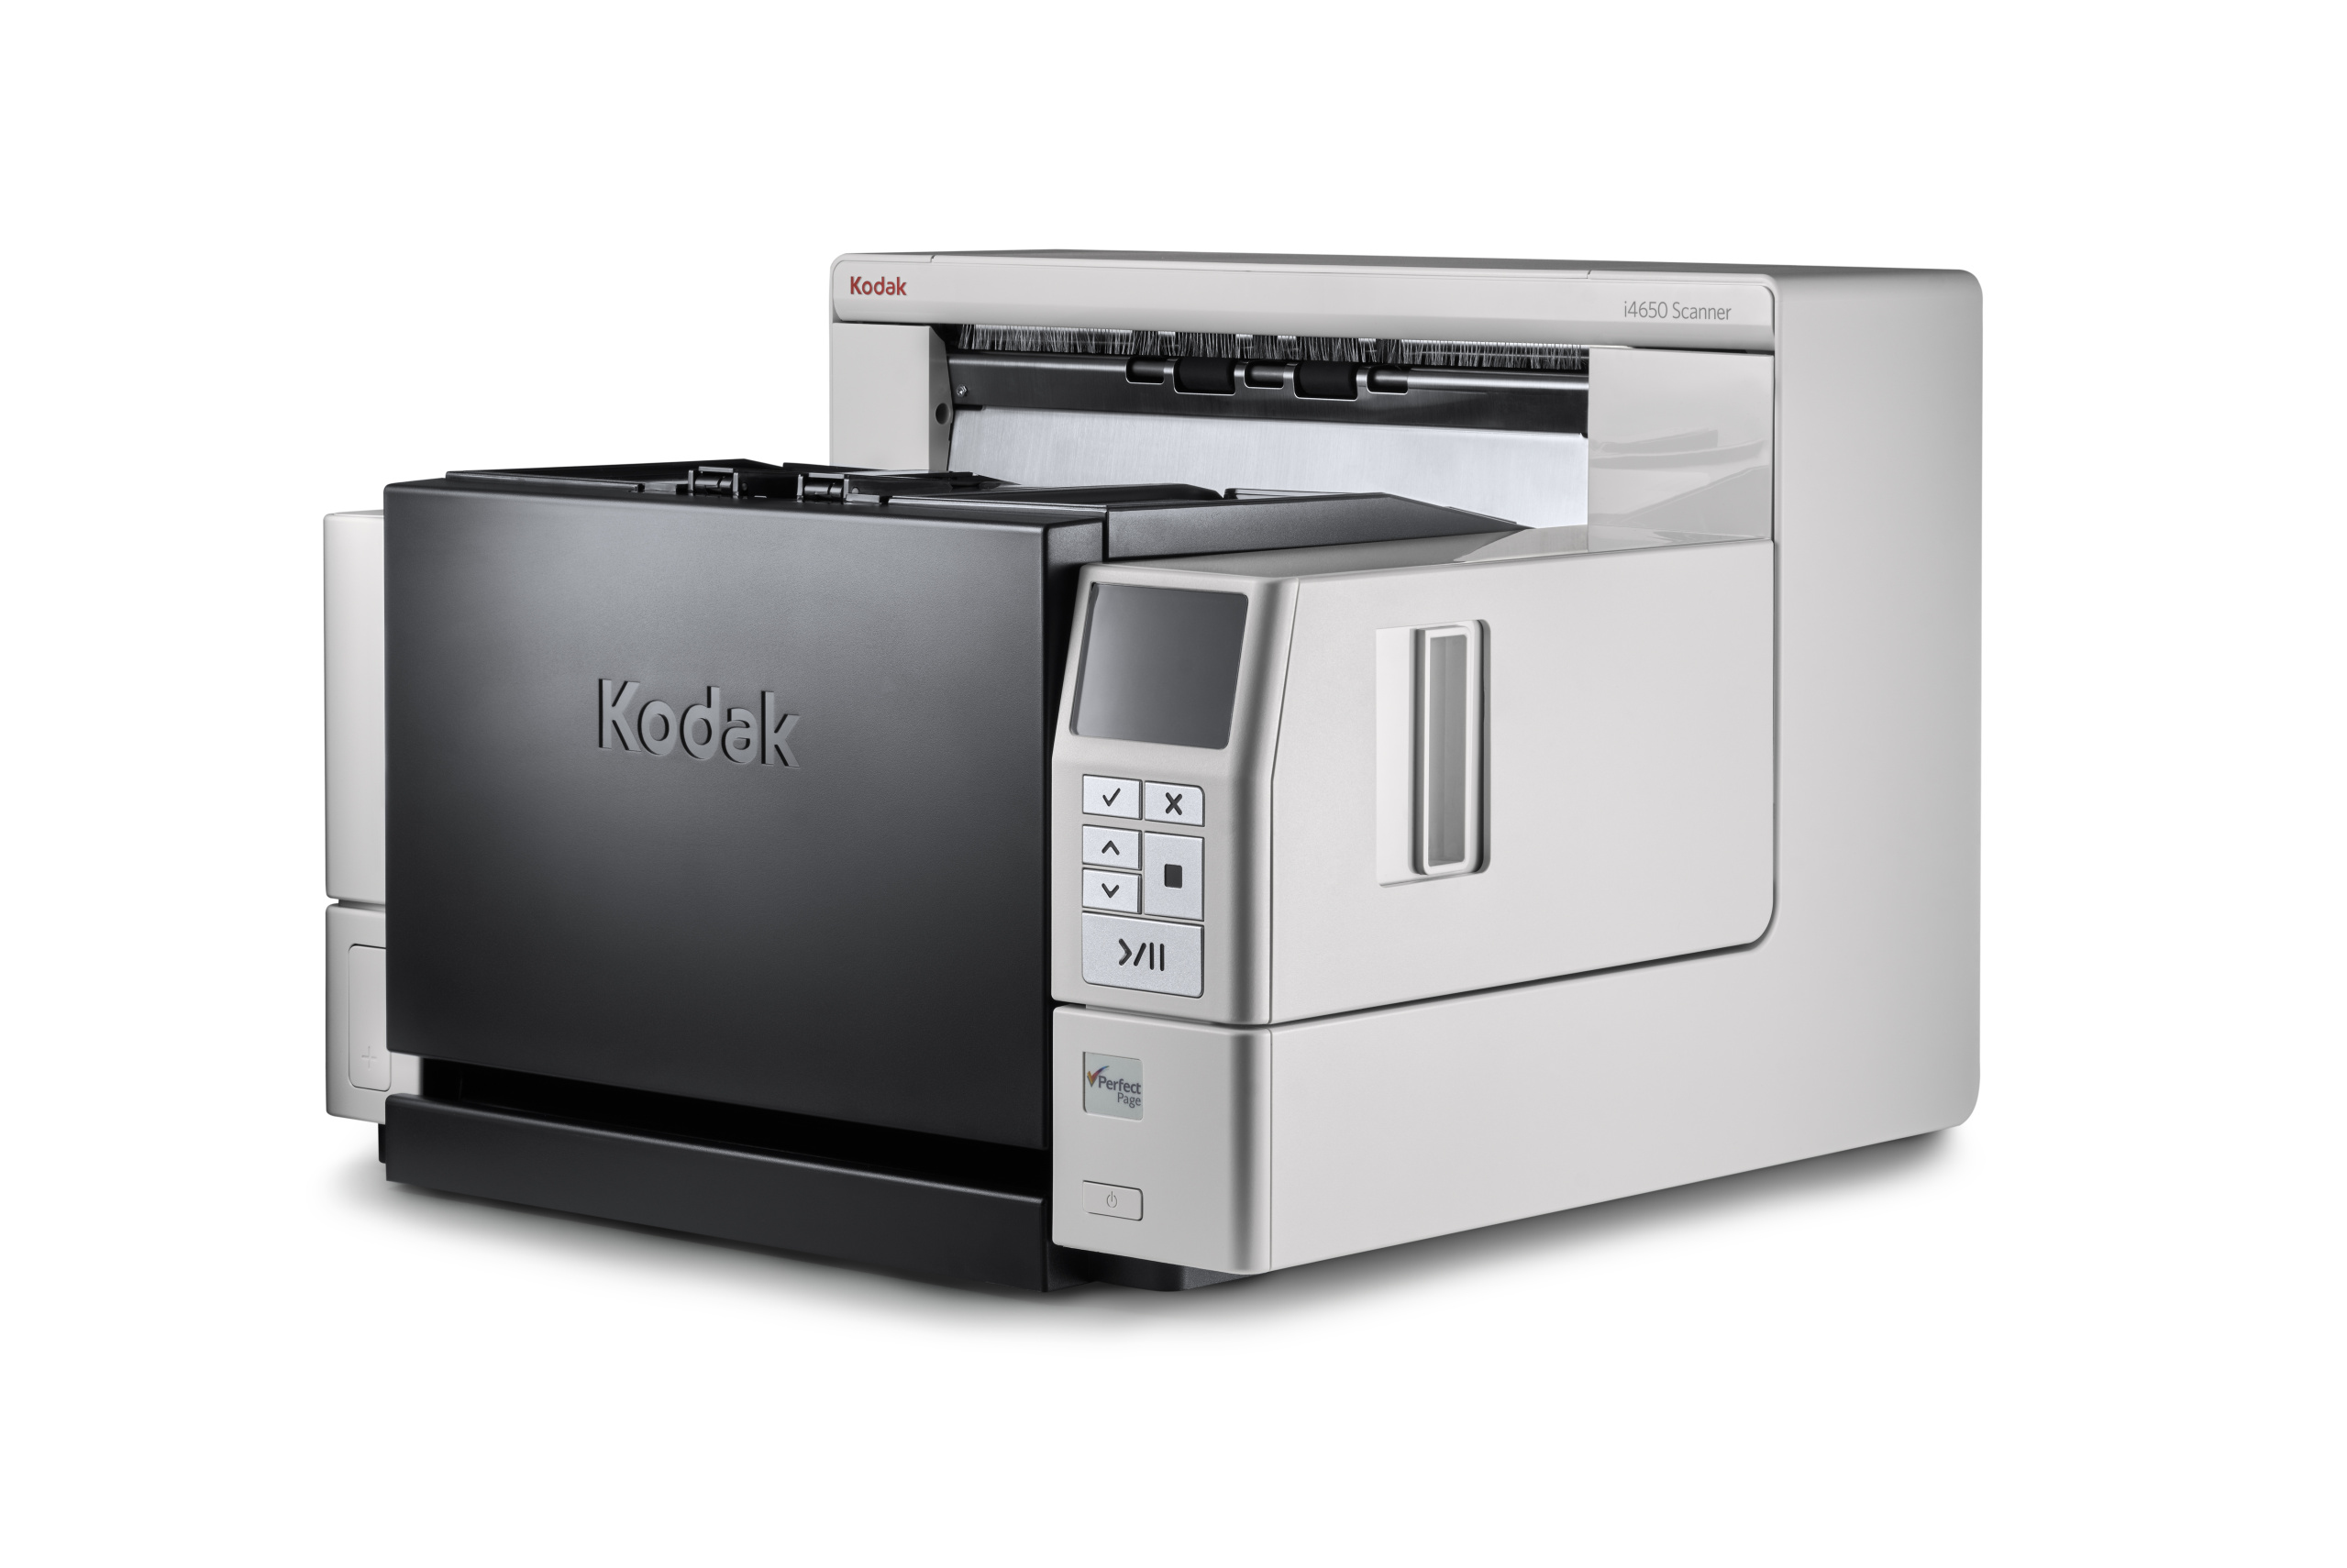 Kodak I4650 Scanner Cheapest Uk Prices Only 12869 Fujitsu Fi Series 7700s Close To Perfect Images